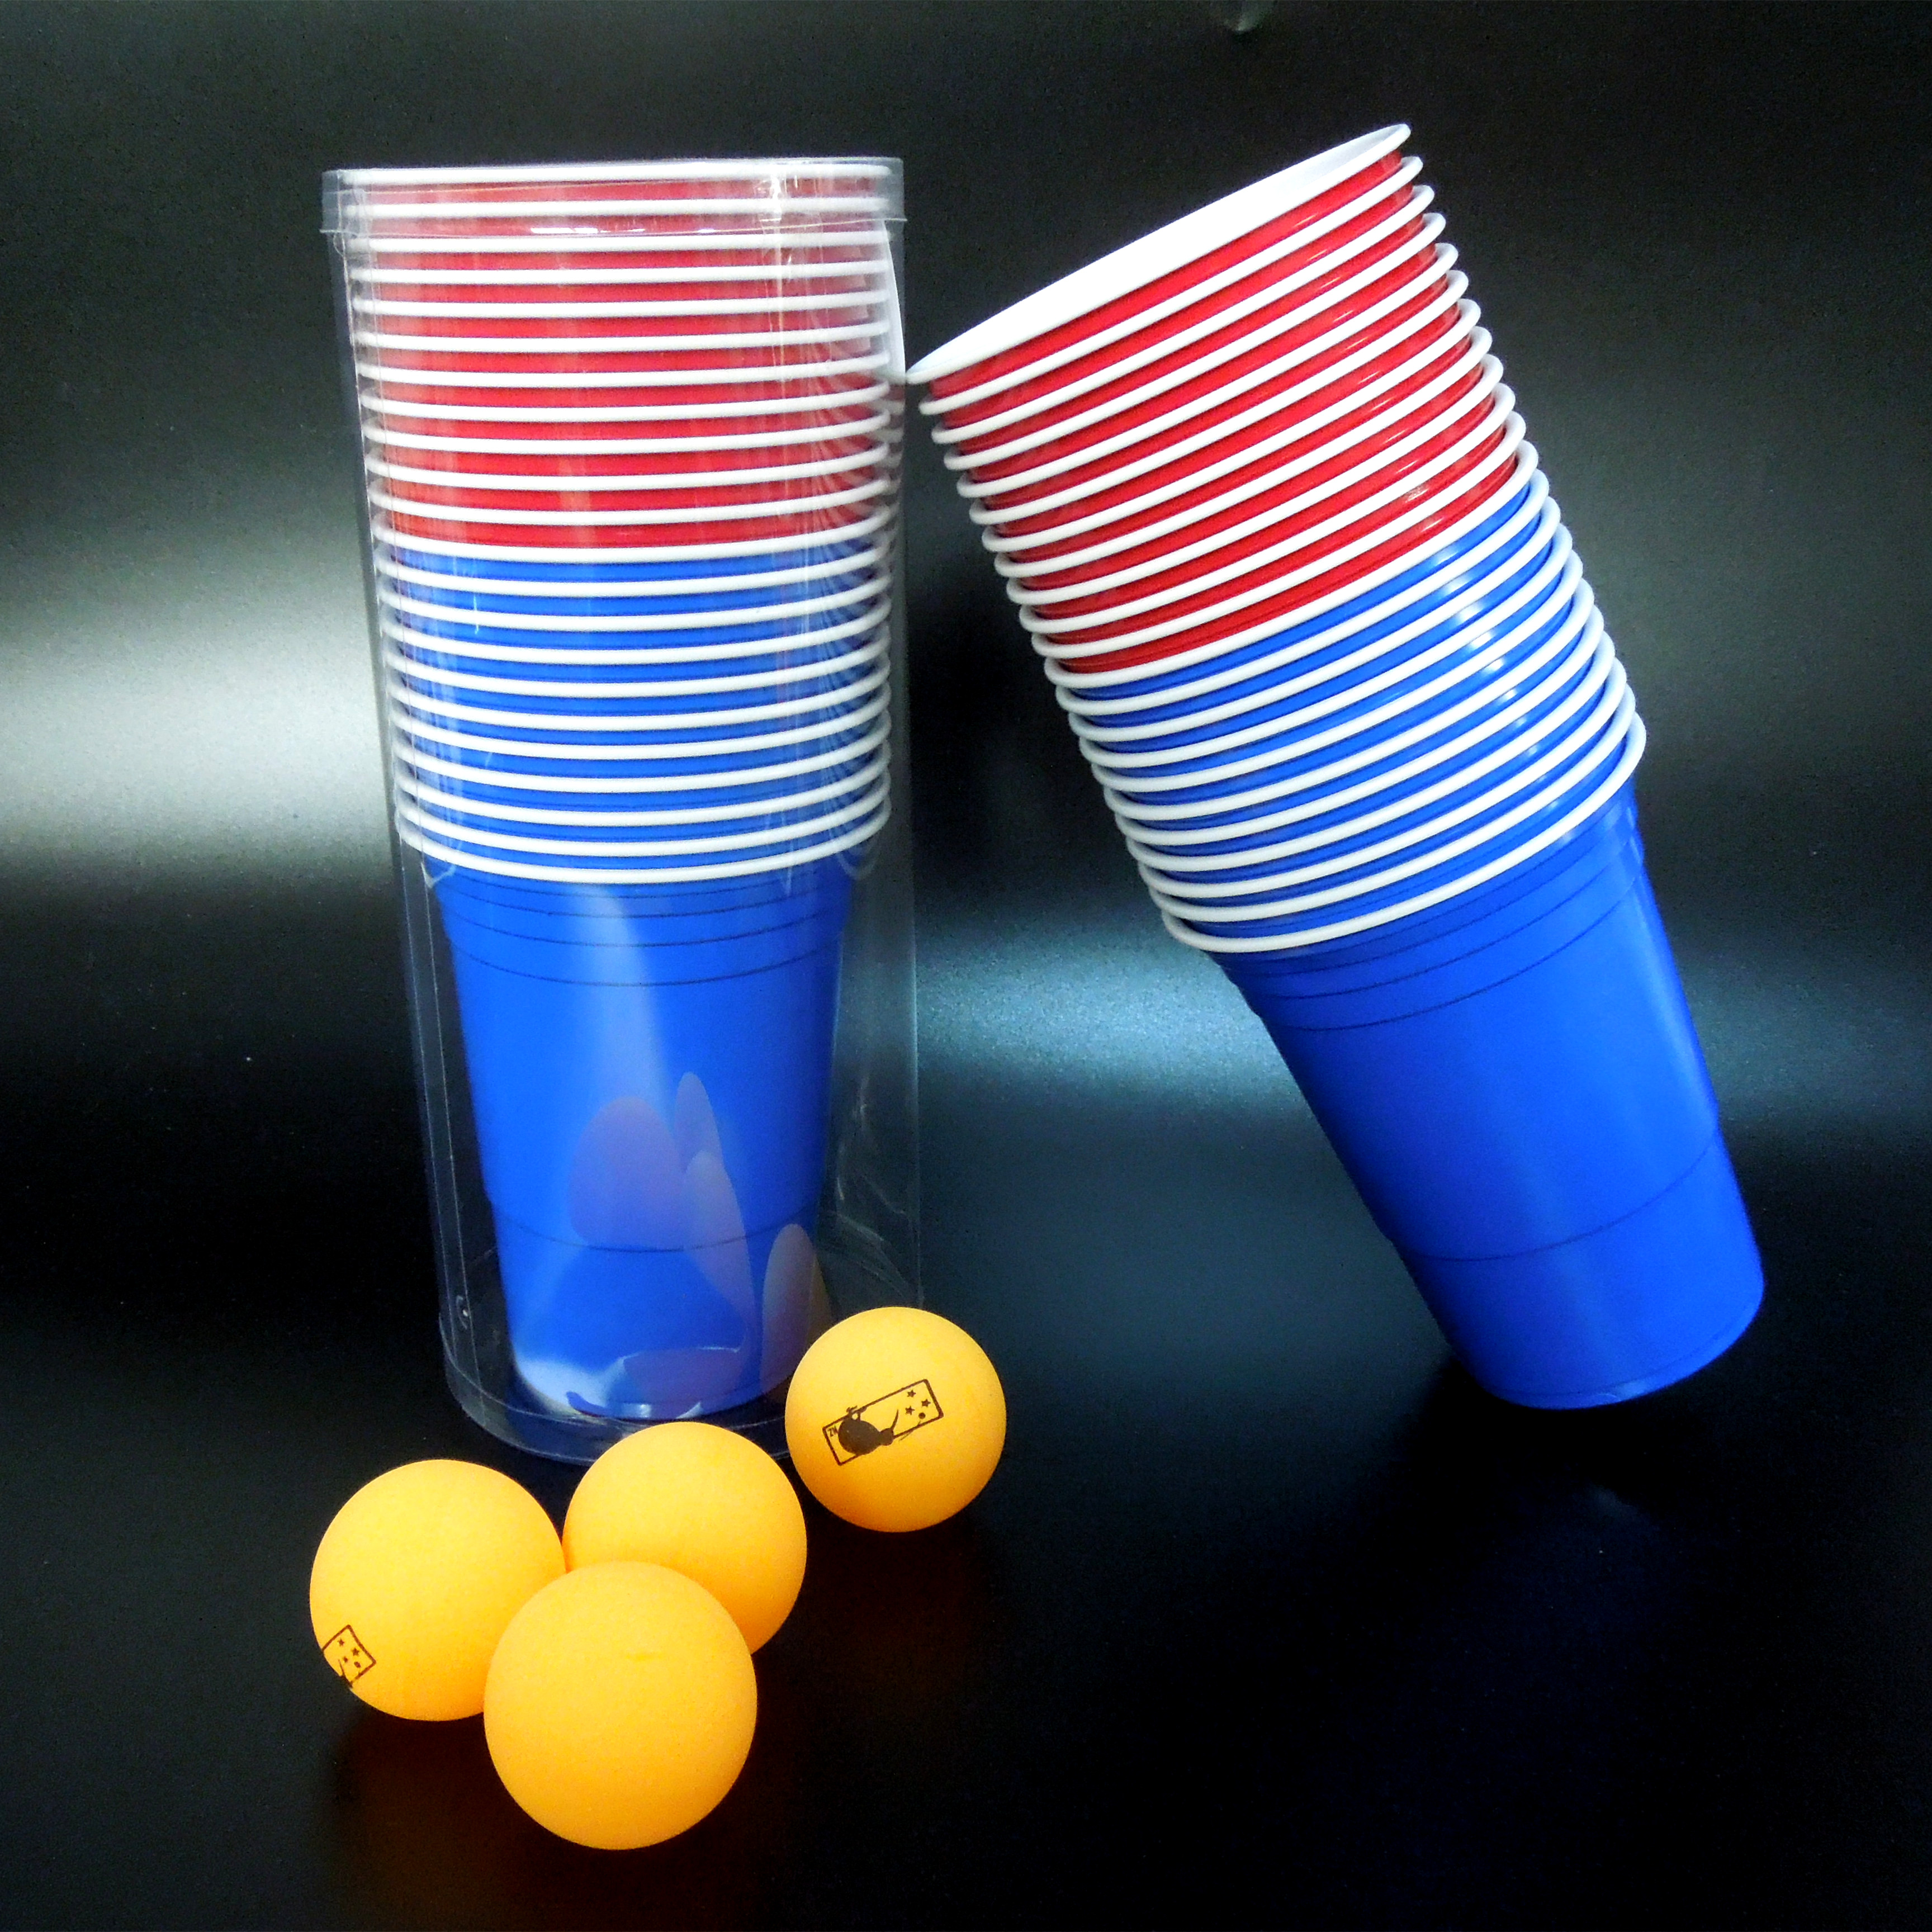 beer pong table cups杯子歌套盒游戏杯一次性 游戏桌 啤酒桌